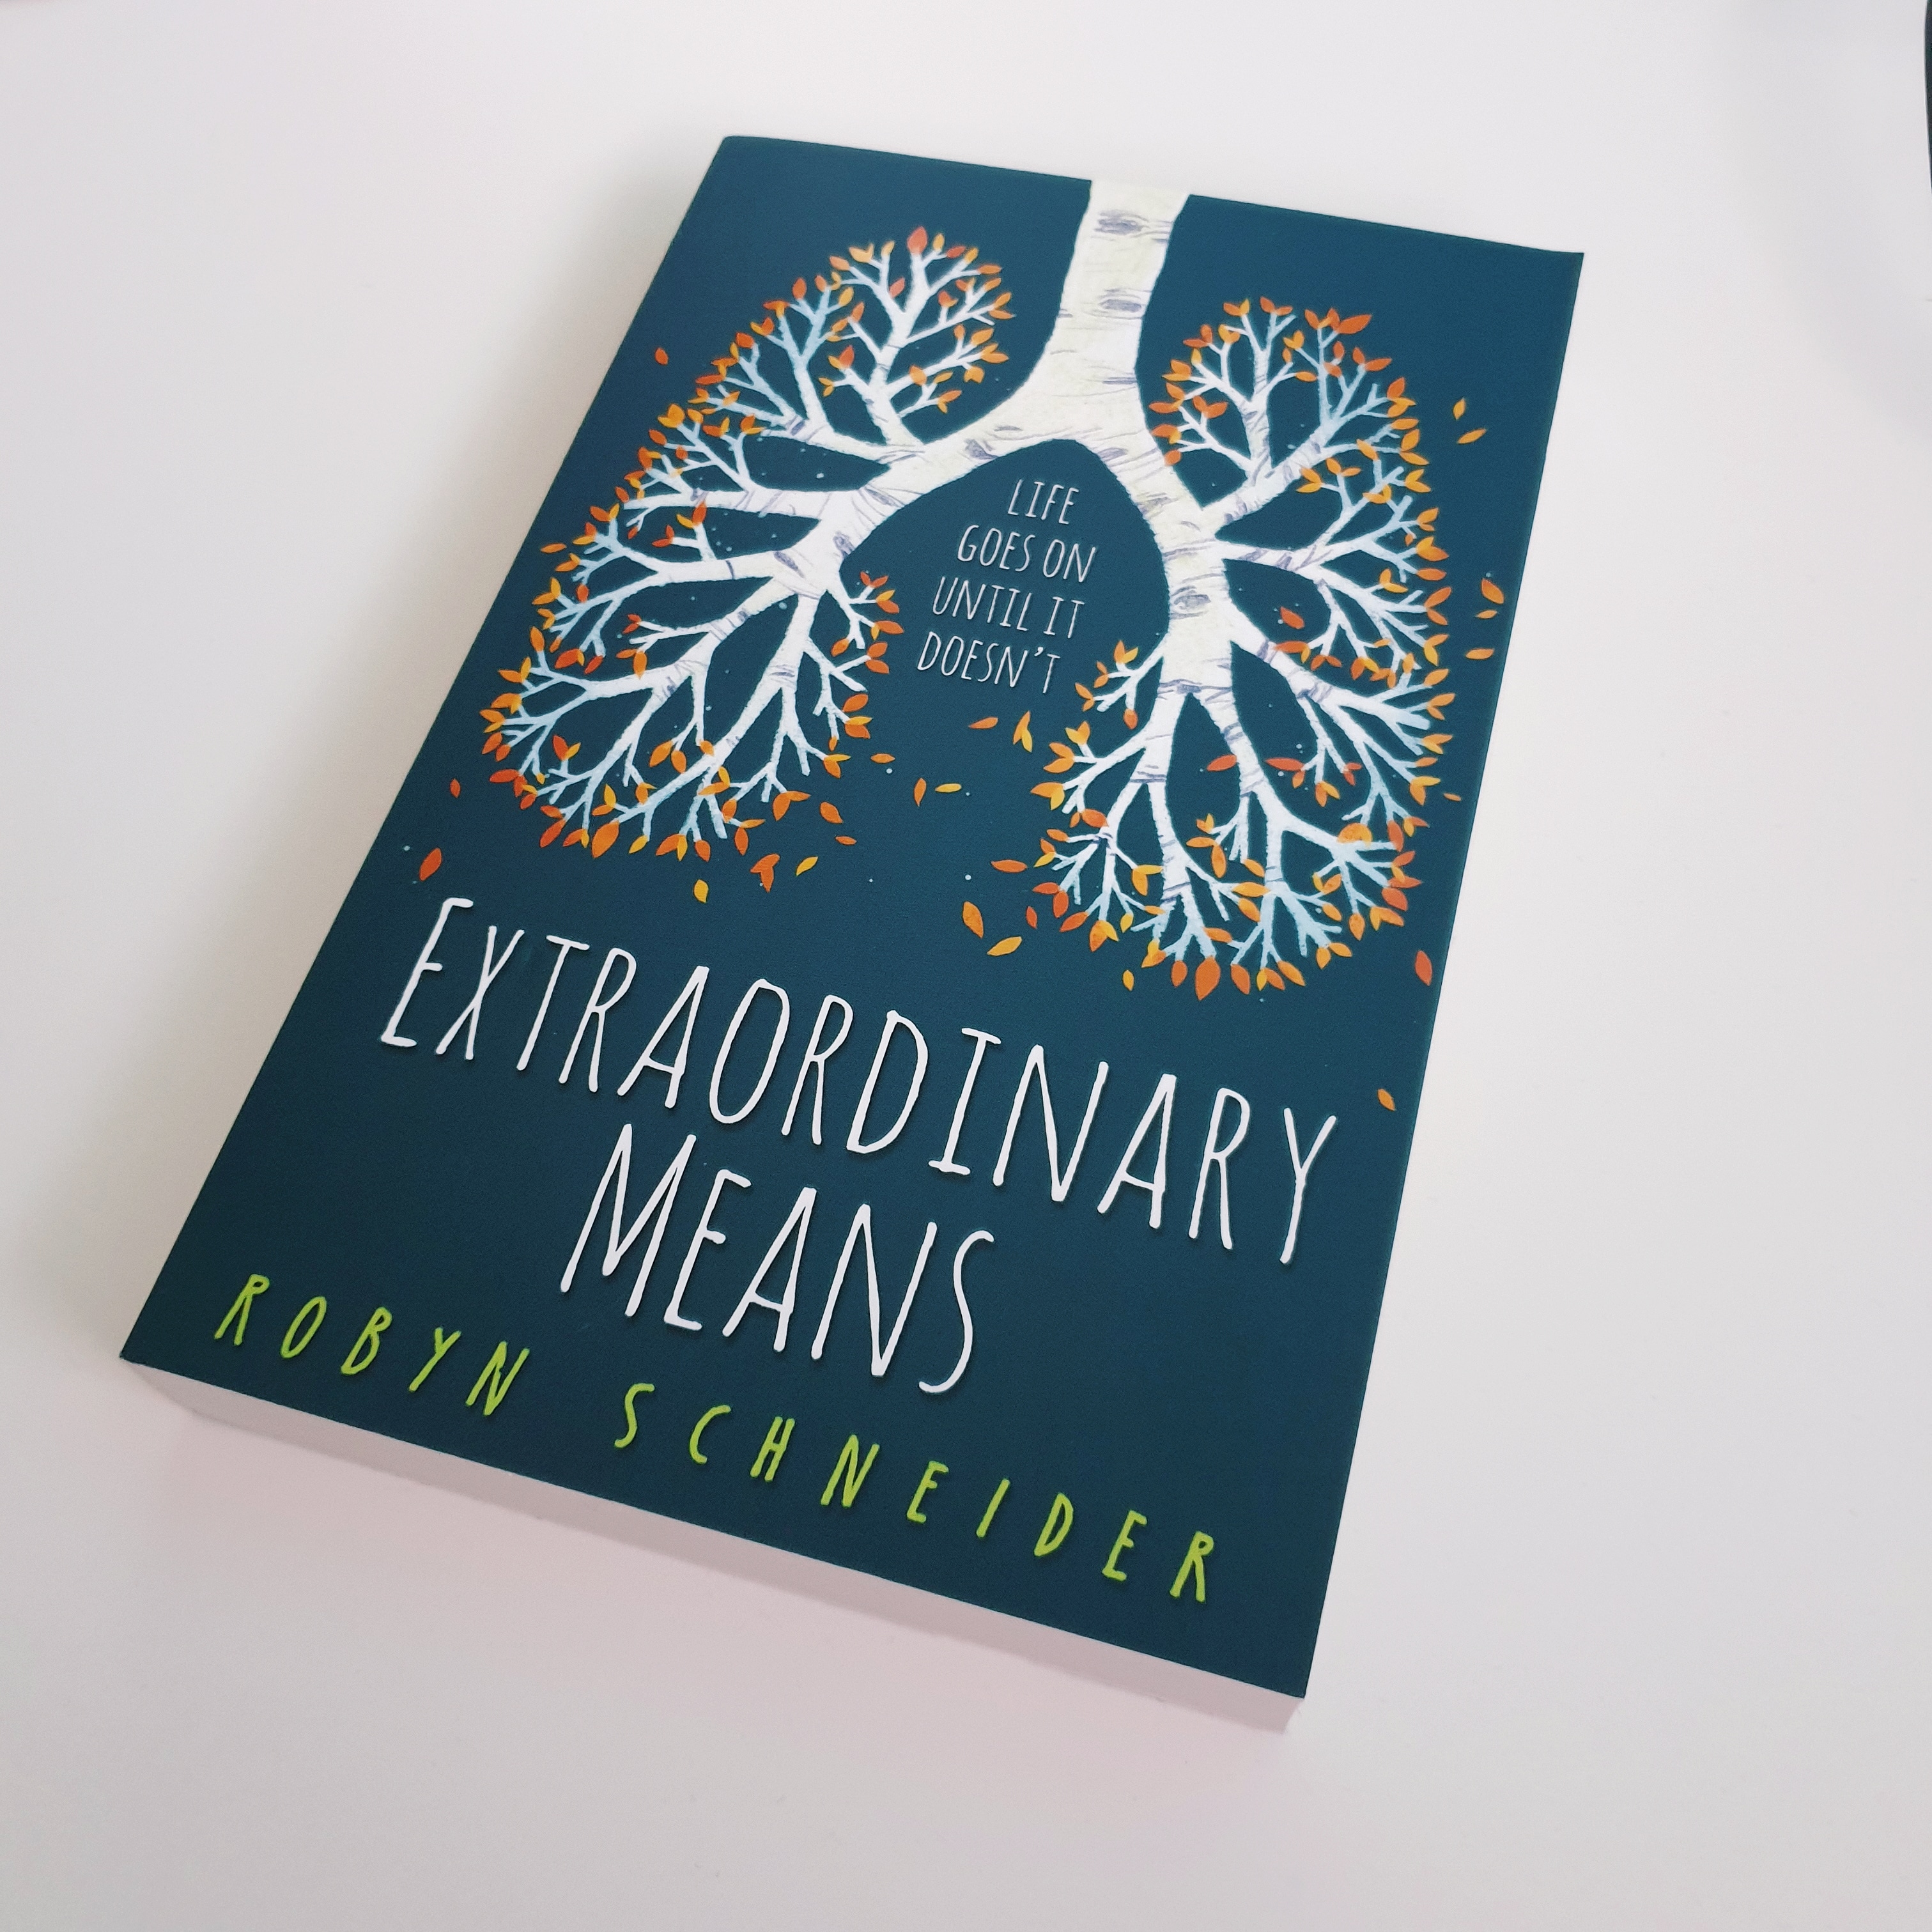 Read my review of 'Extraordinary Means' by Robyn Schneider on theveryhungrybookworm.com!